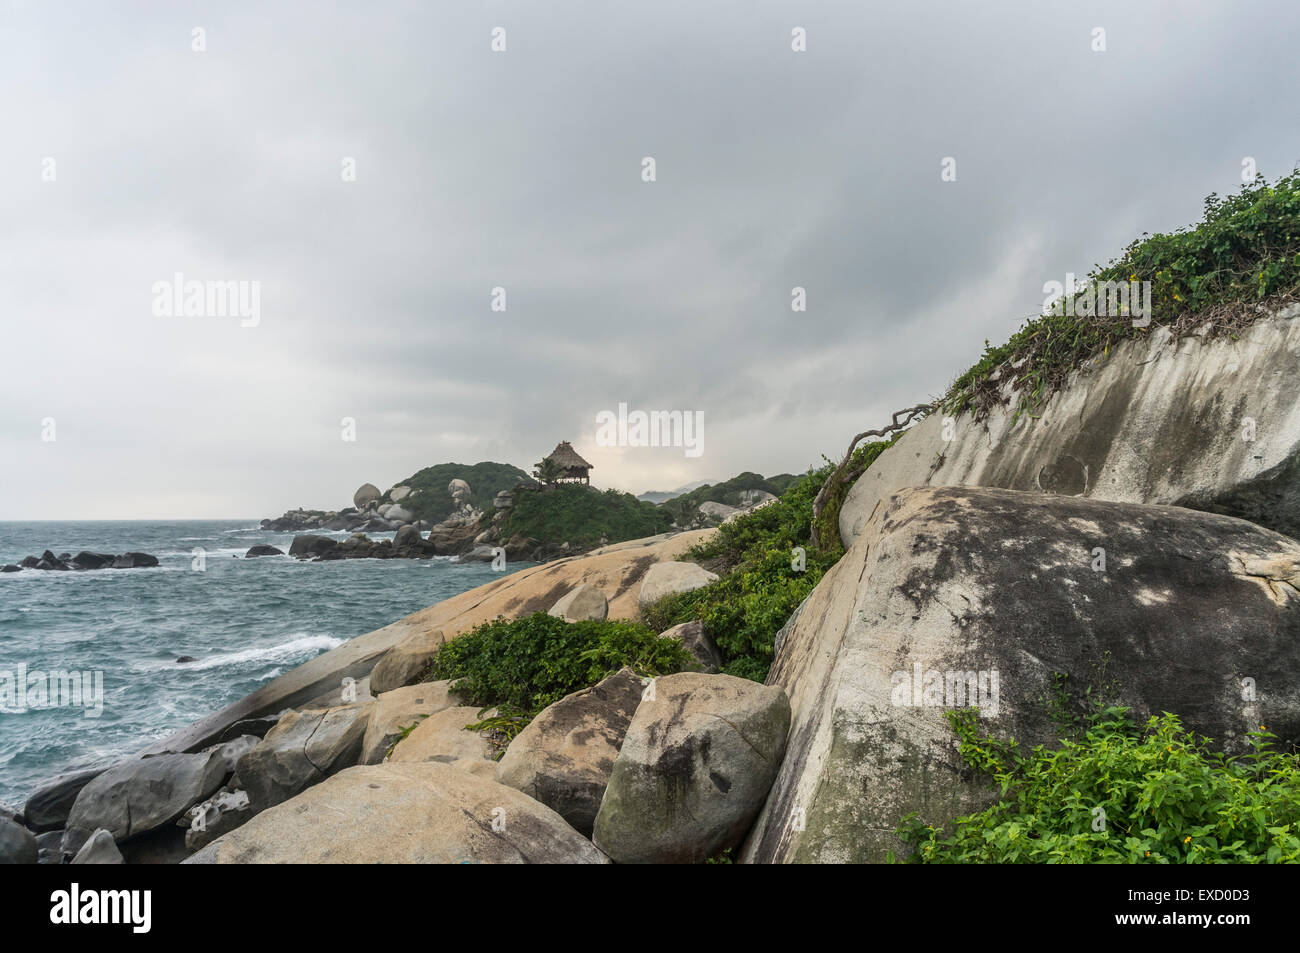 View of the rocky coast at Cabo San Juan in Tayrona National Park near Santa Marta, Colombia.  The park is one of - Stock Image